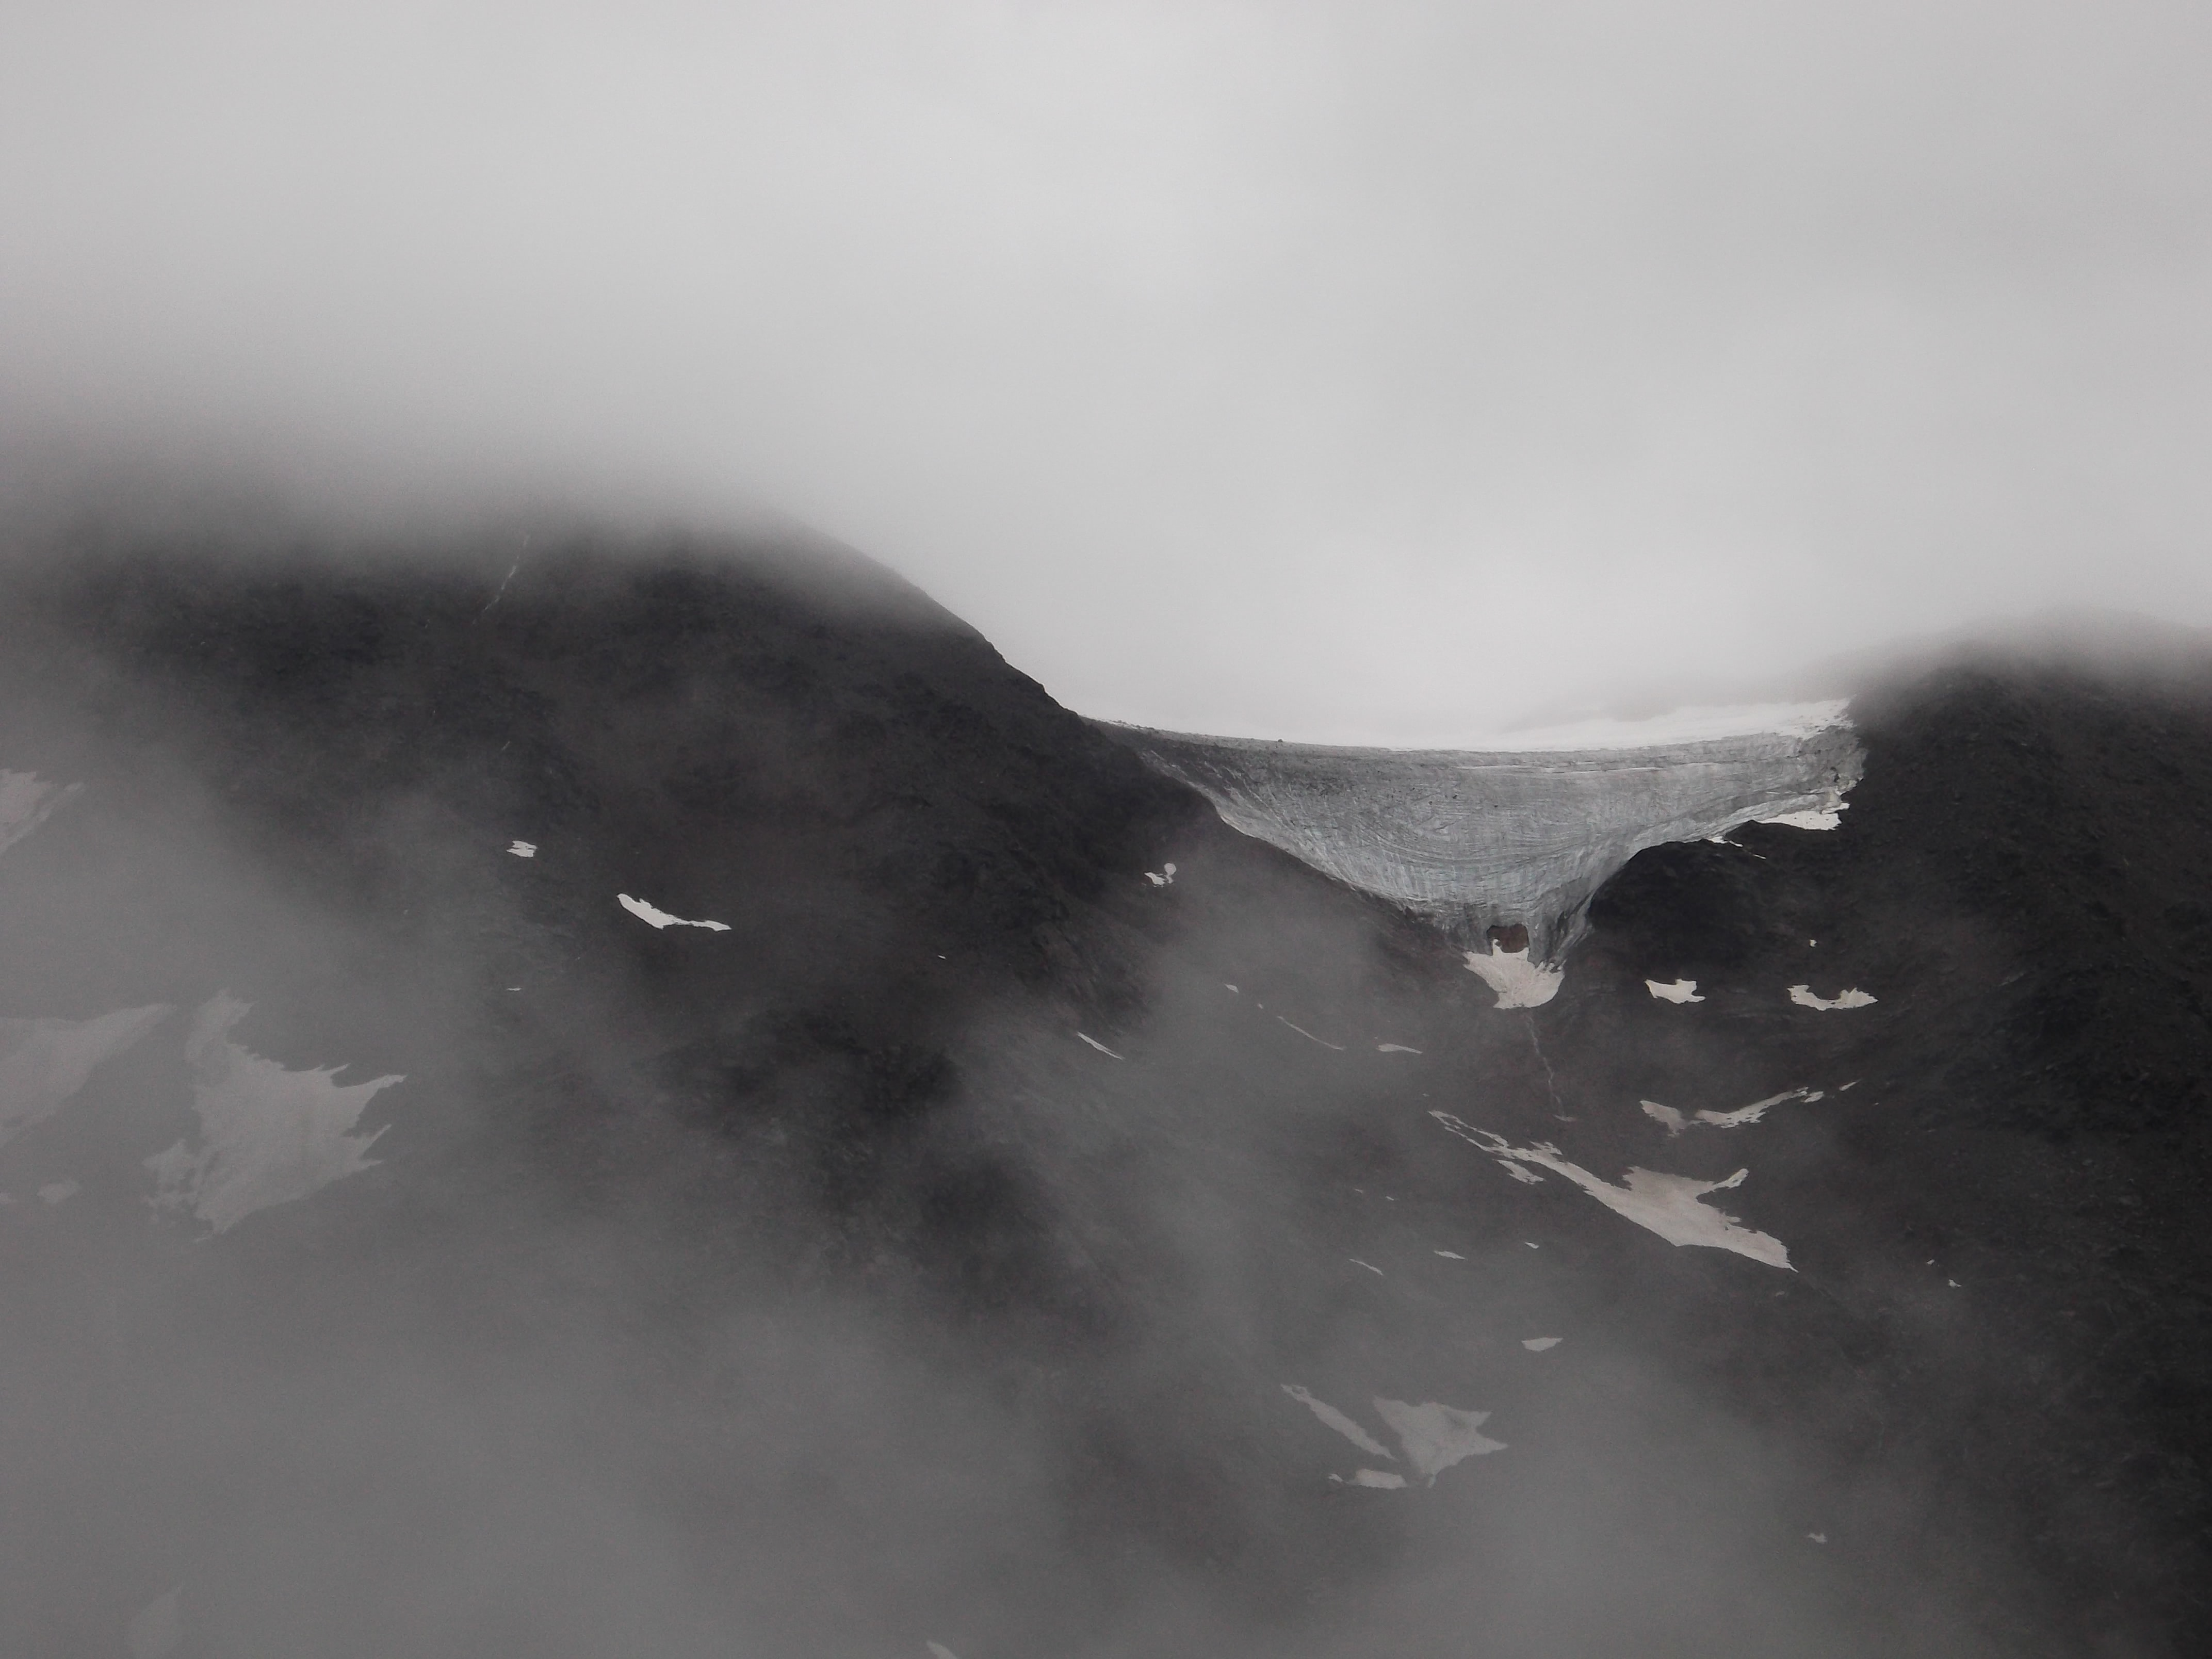 Gray misty mountains with snow during the winter